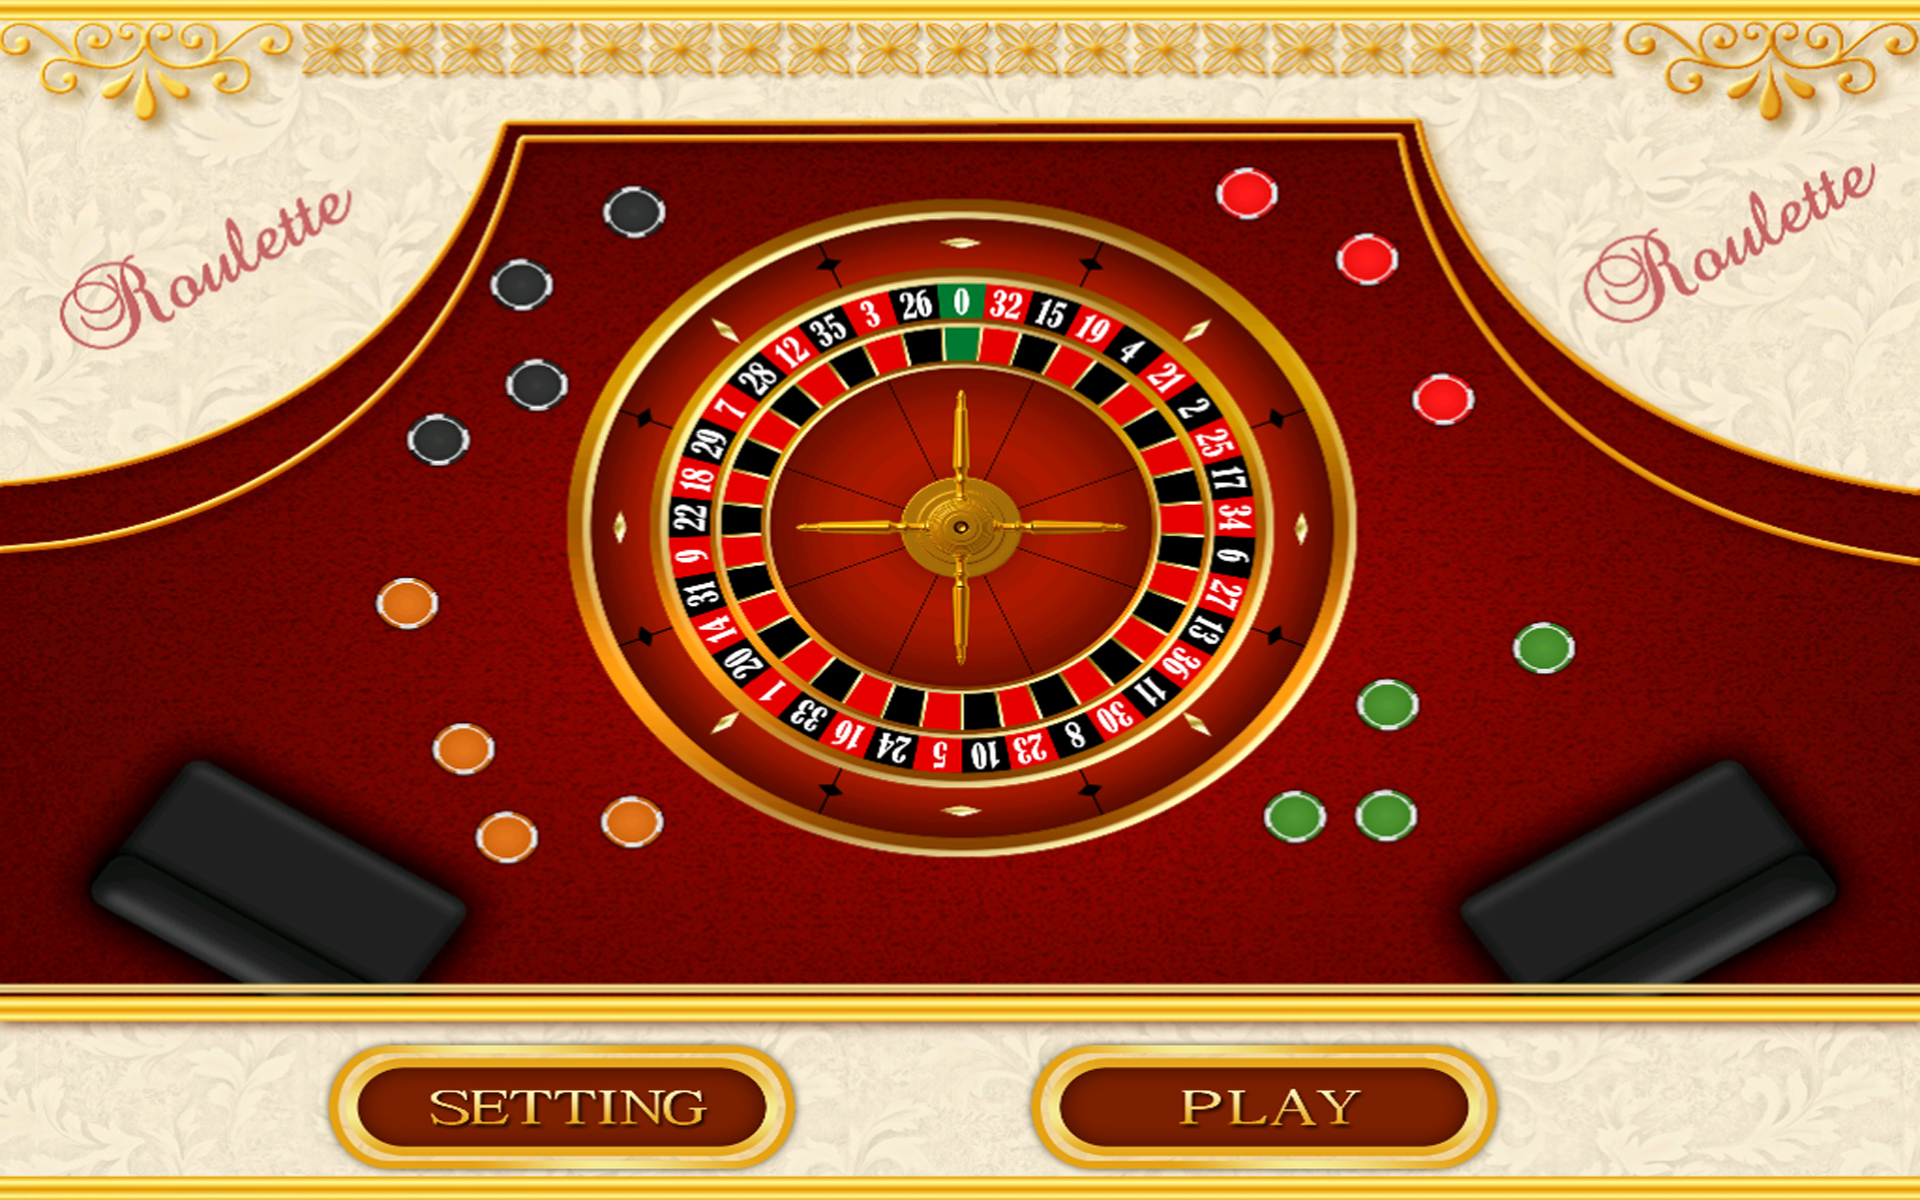 Roulette 4 Hrg 4: Roulette Board Game: Amazon.co.uk